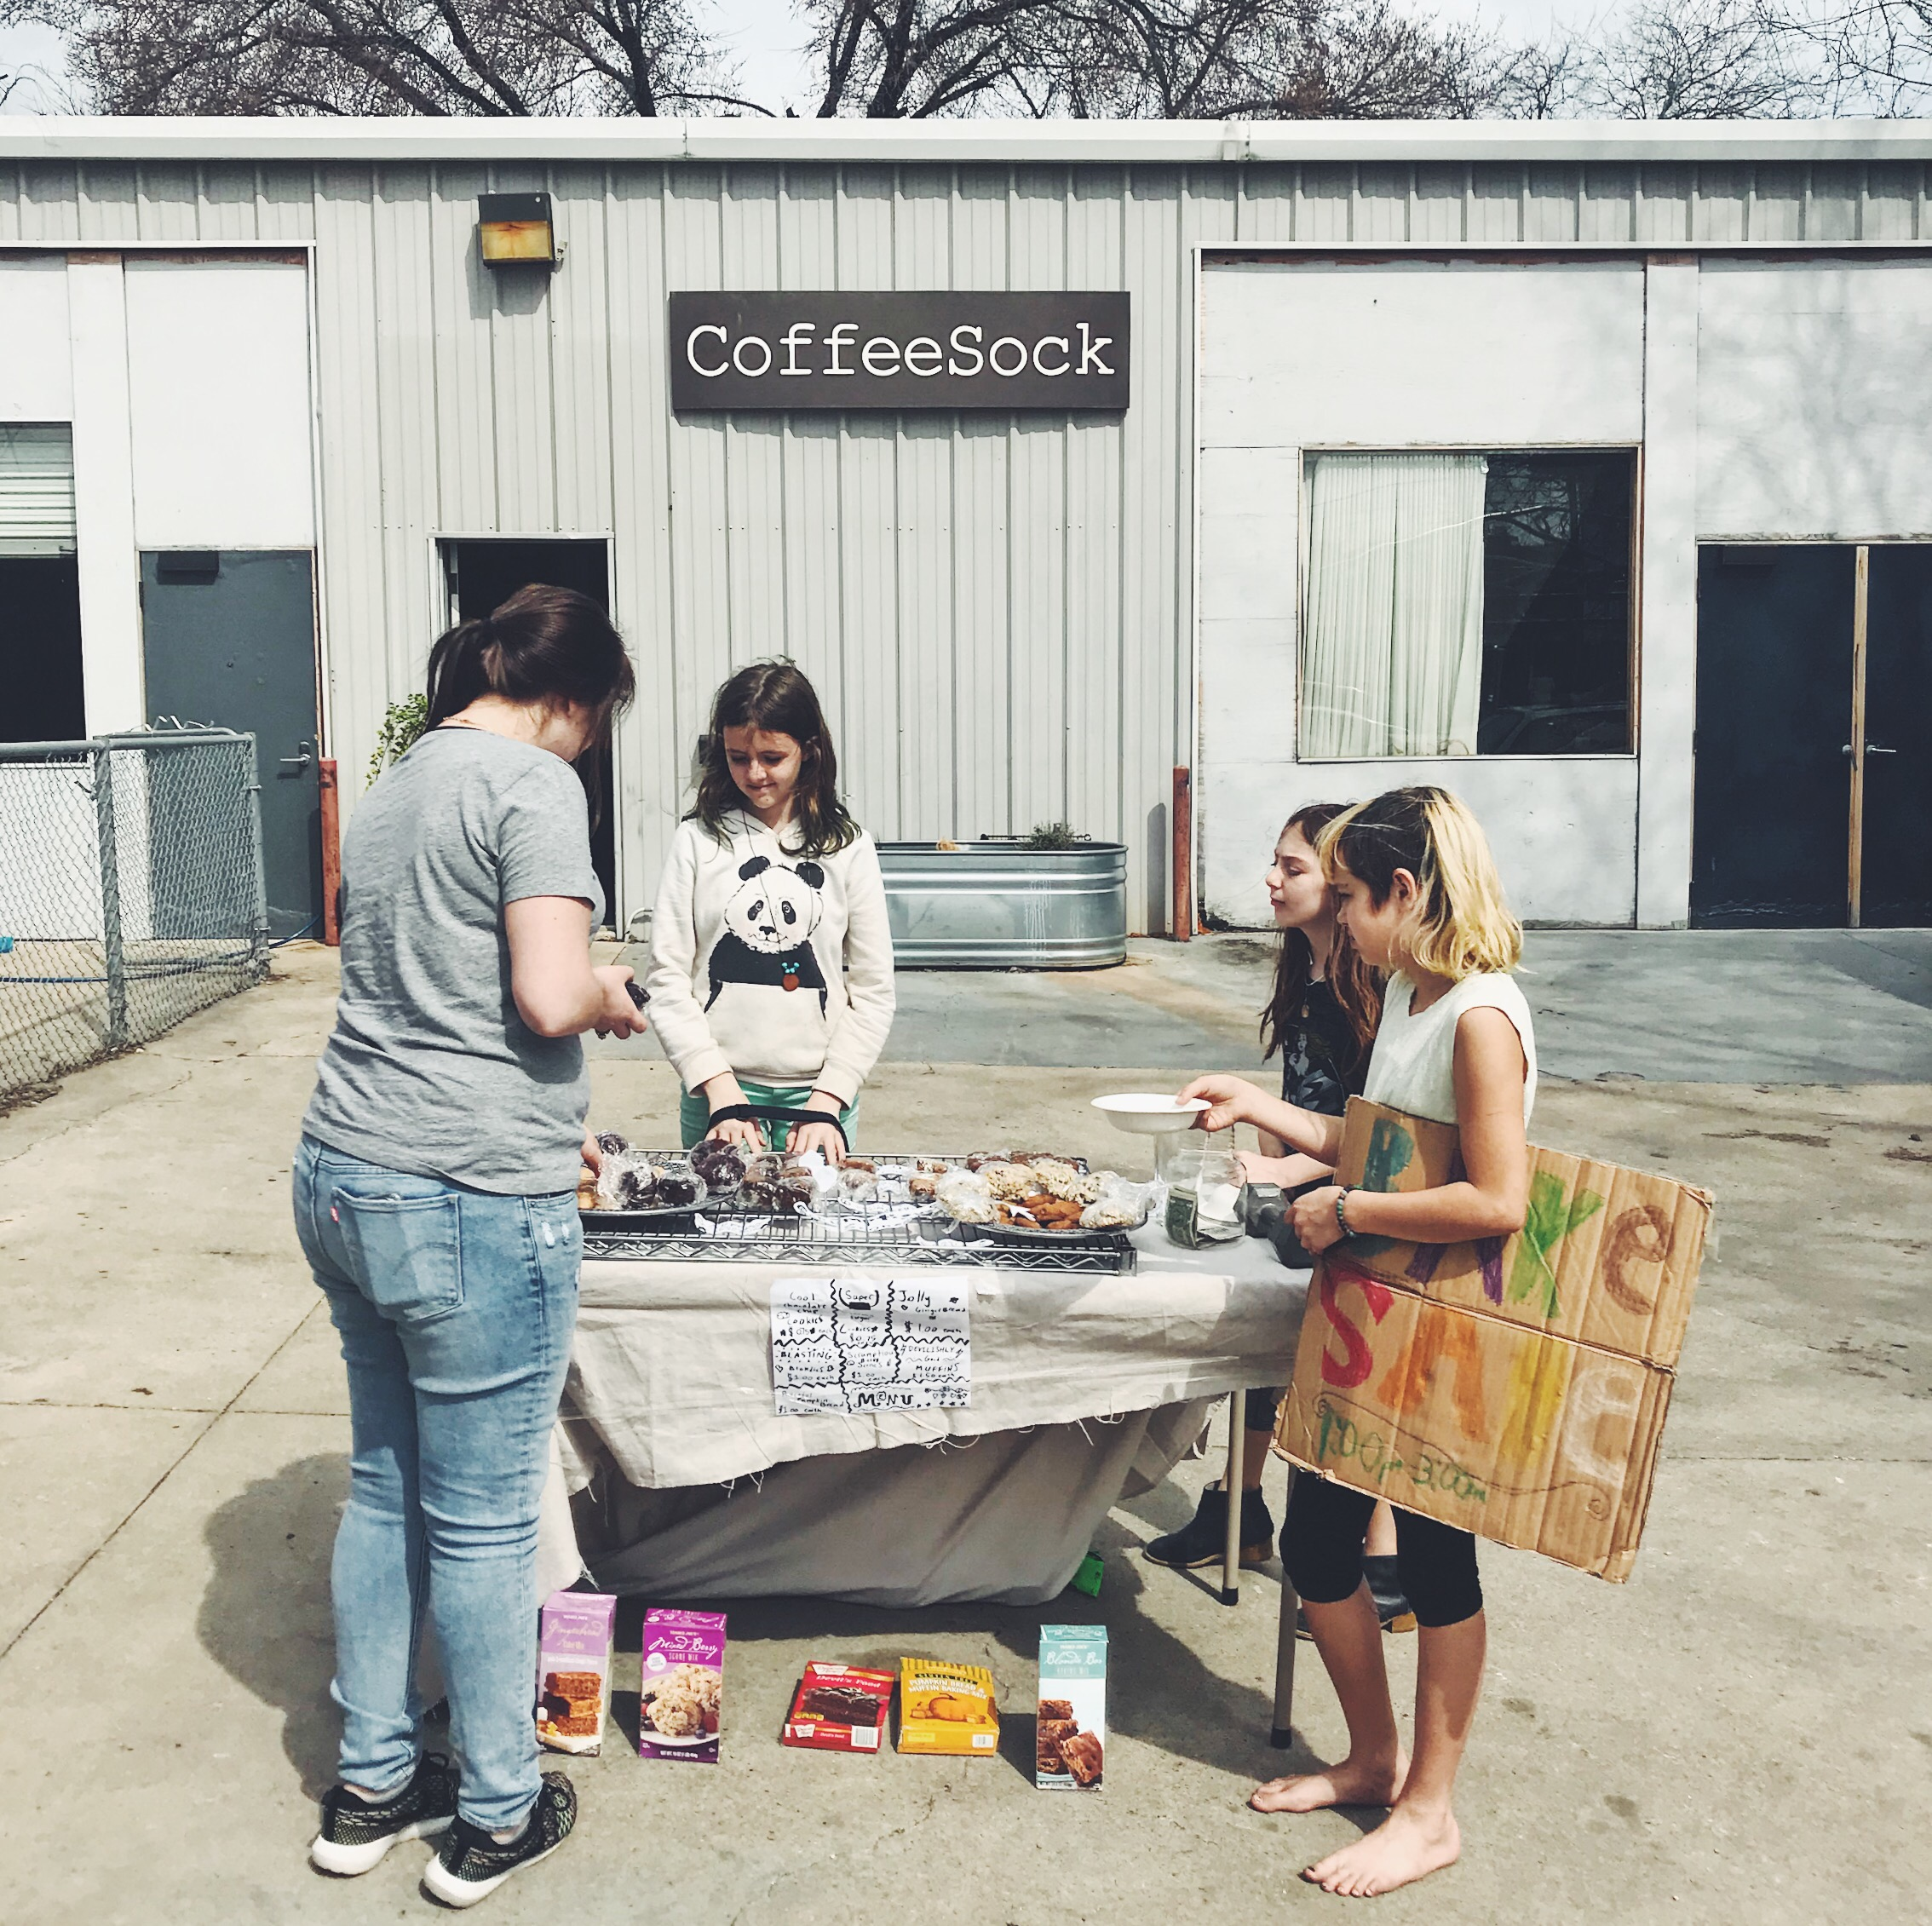 Inspiring the next generation of small business owners